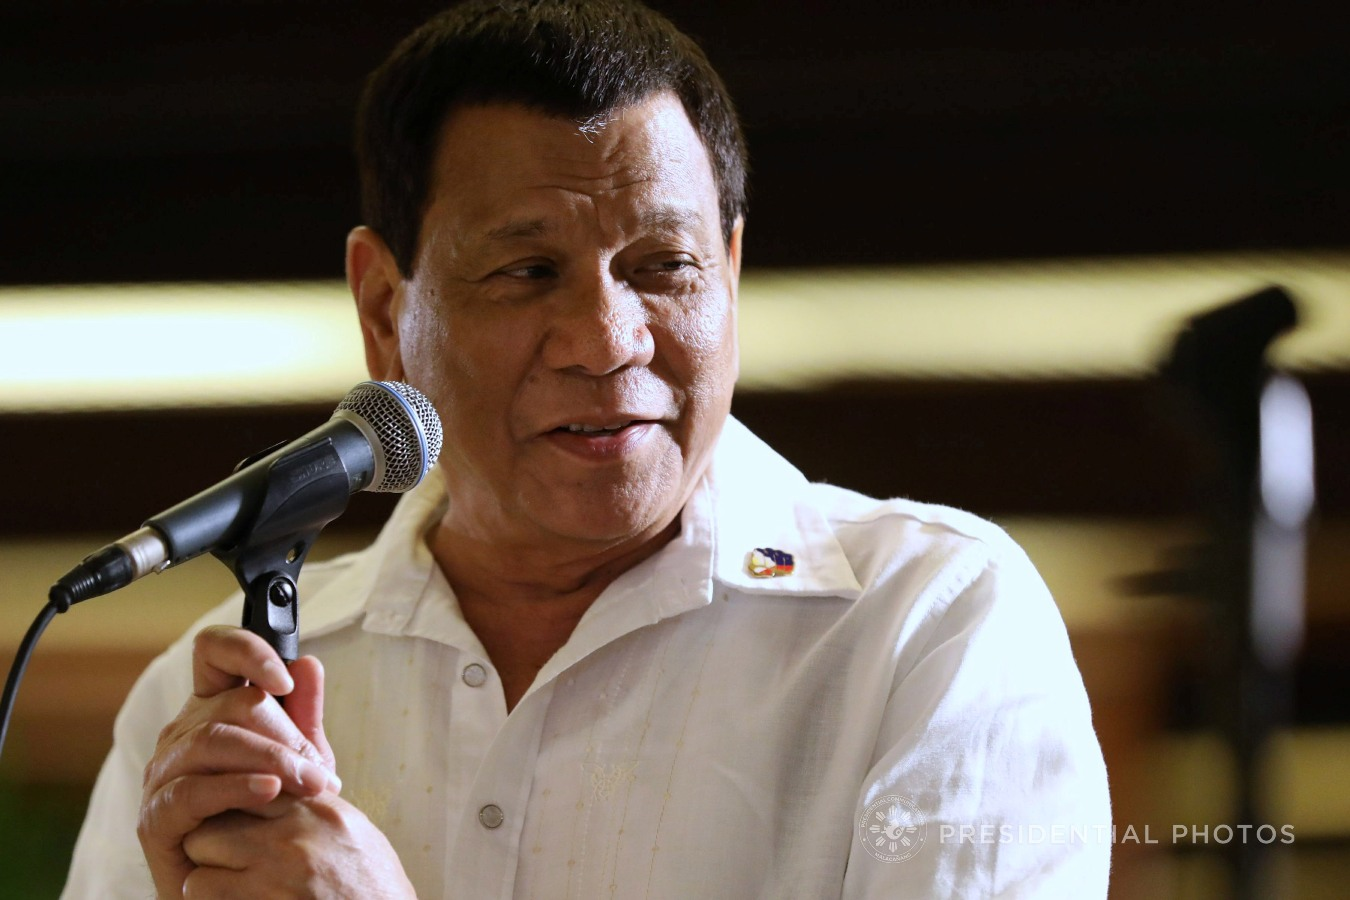 Malacañang summons United States envoy over intel report